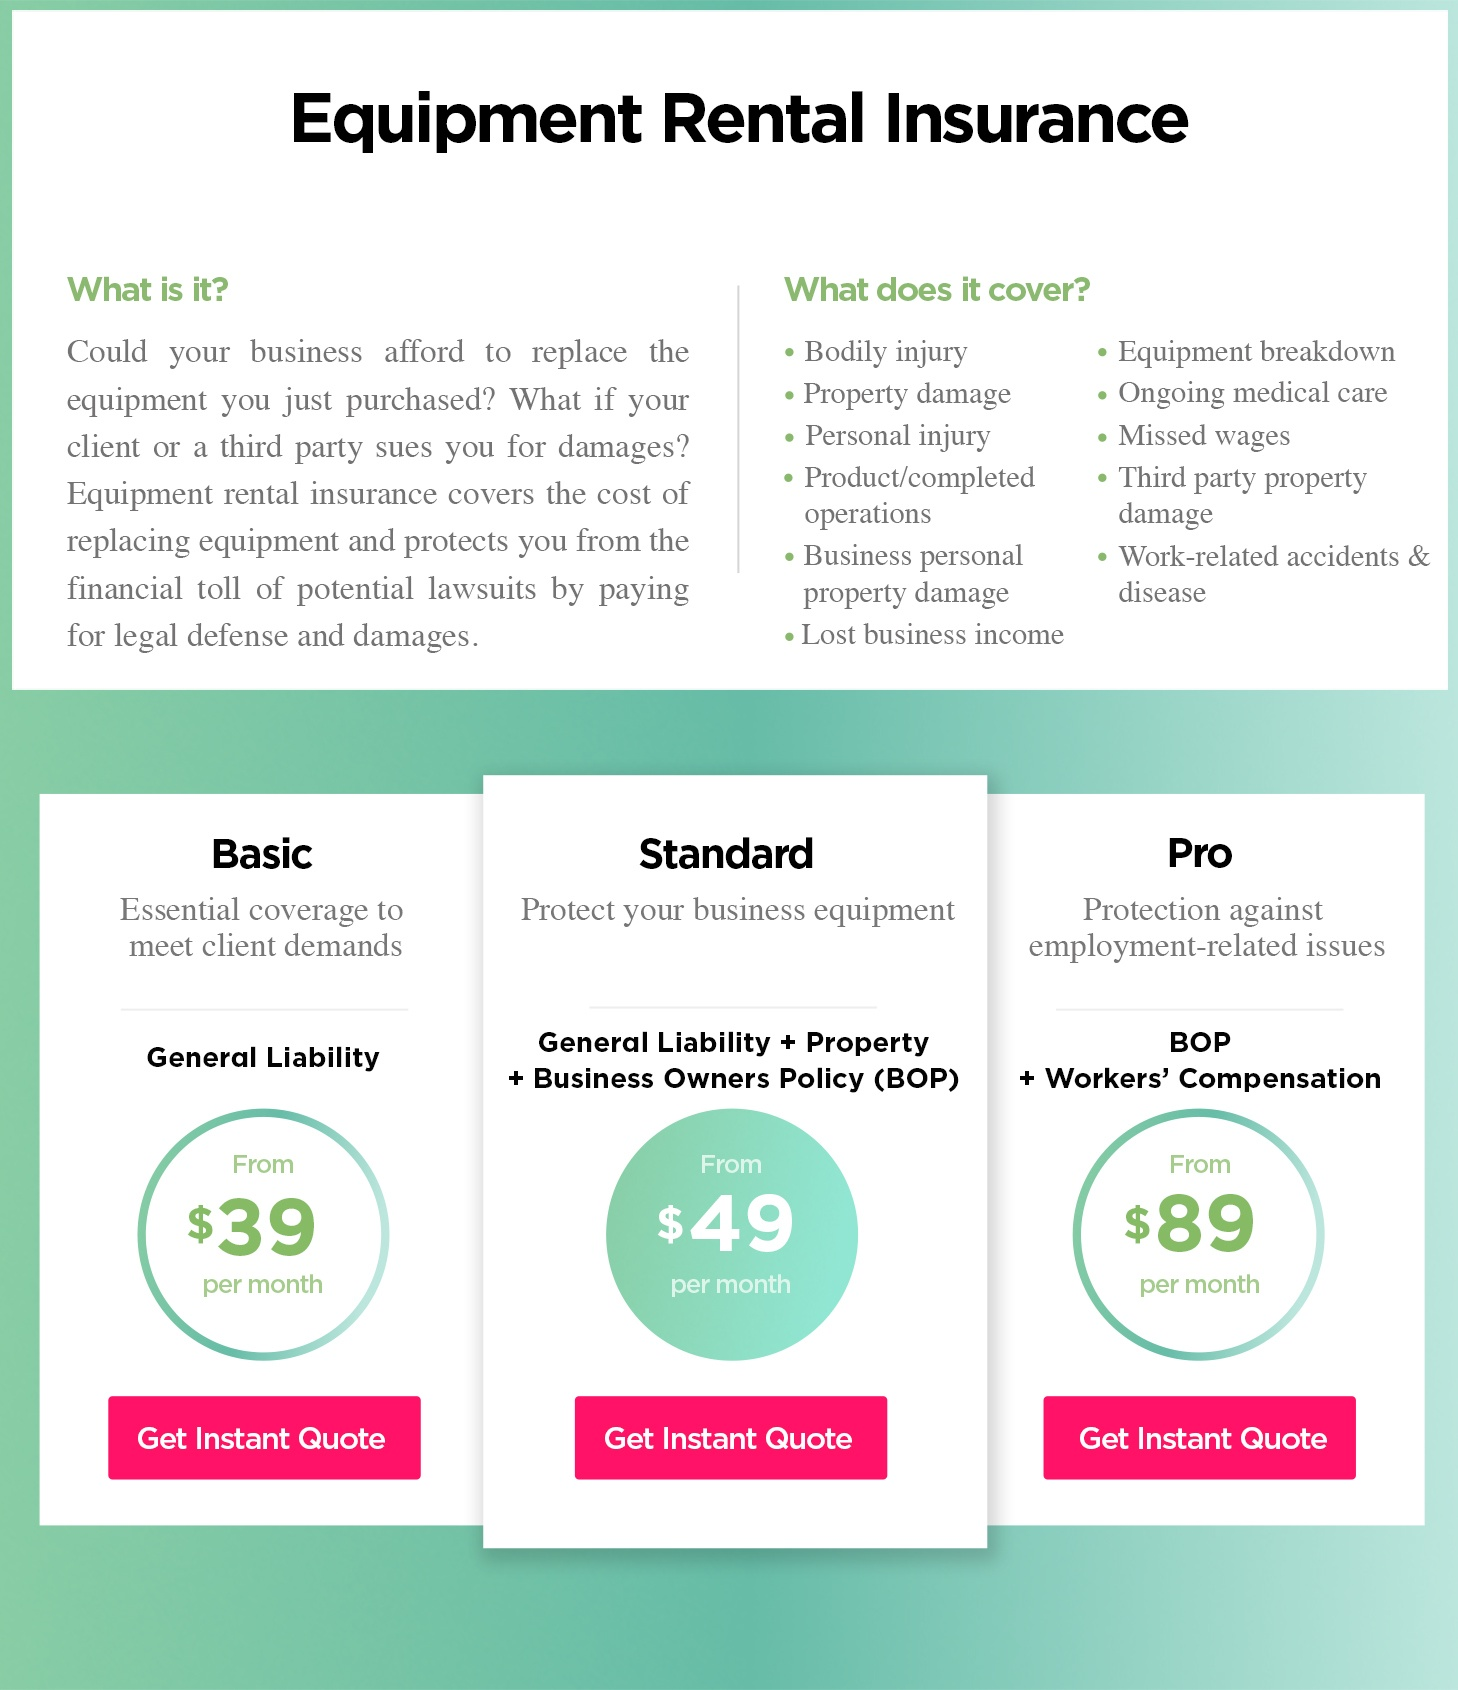 How much does equipment rental insurance cost?